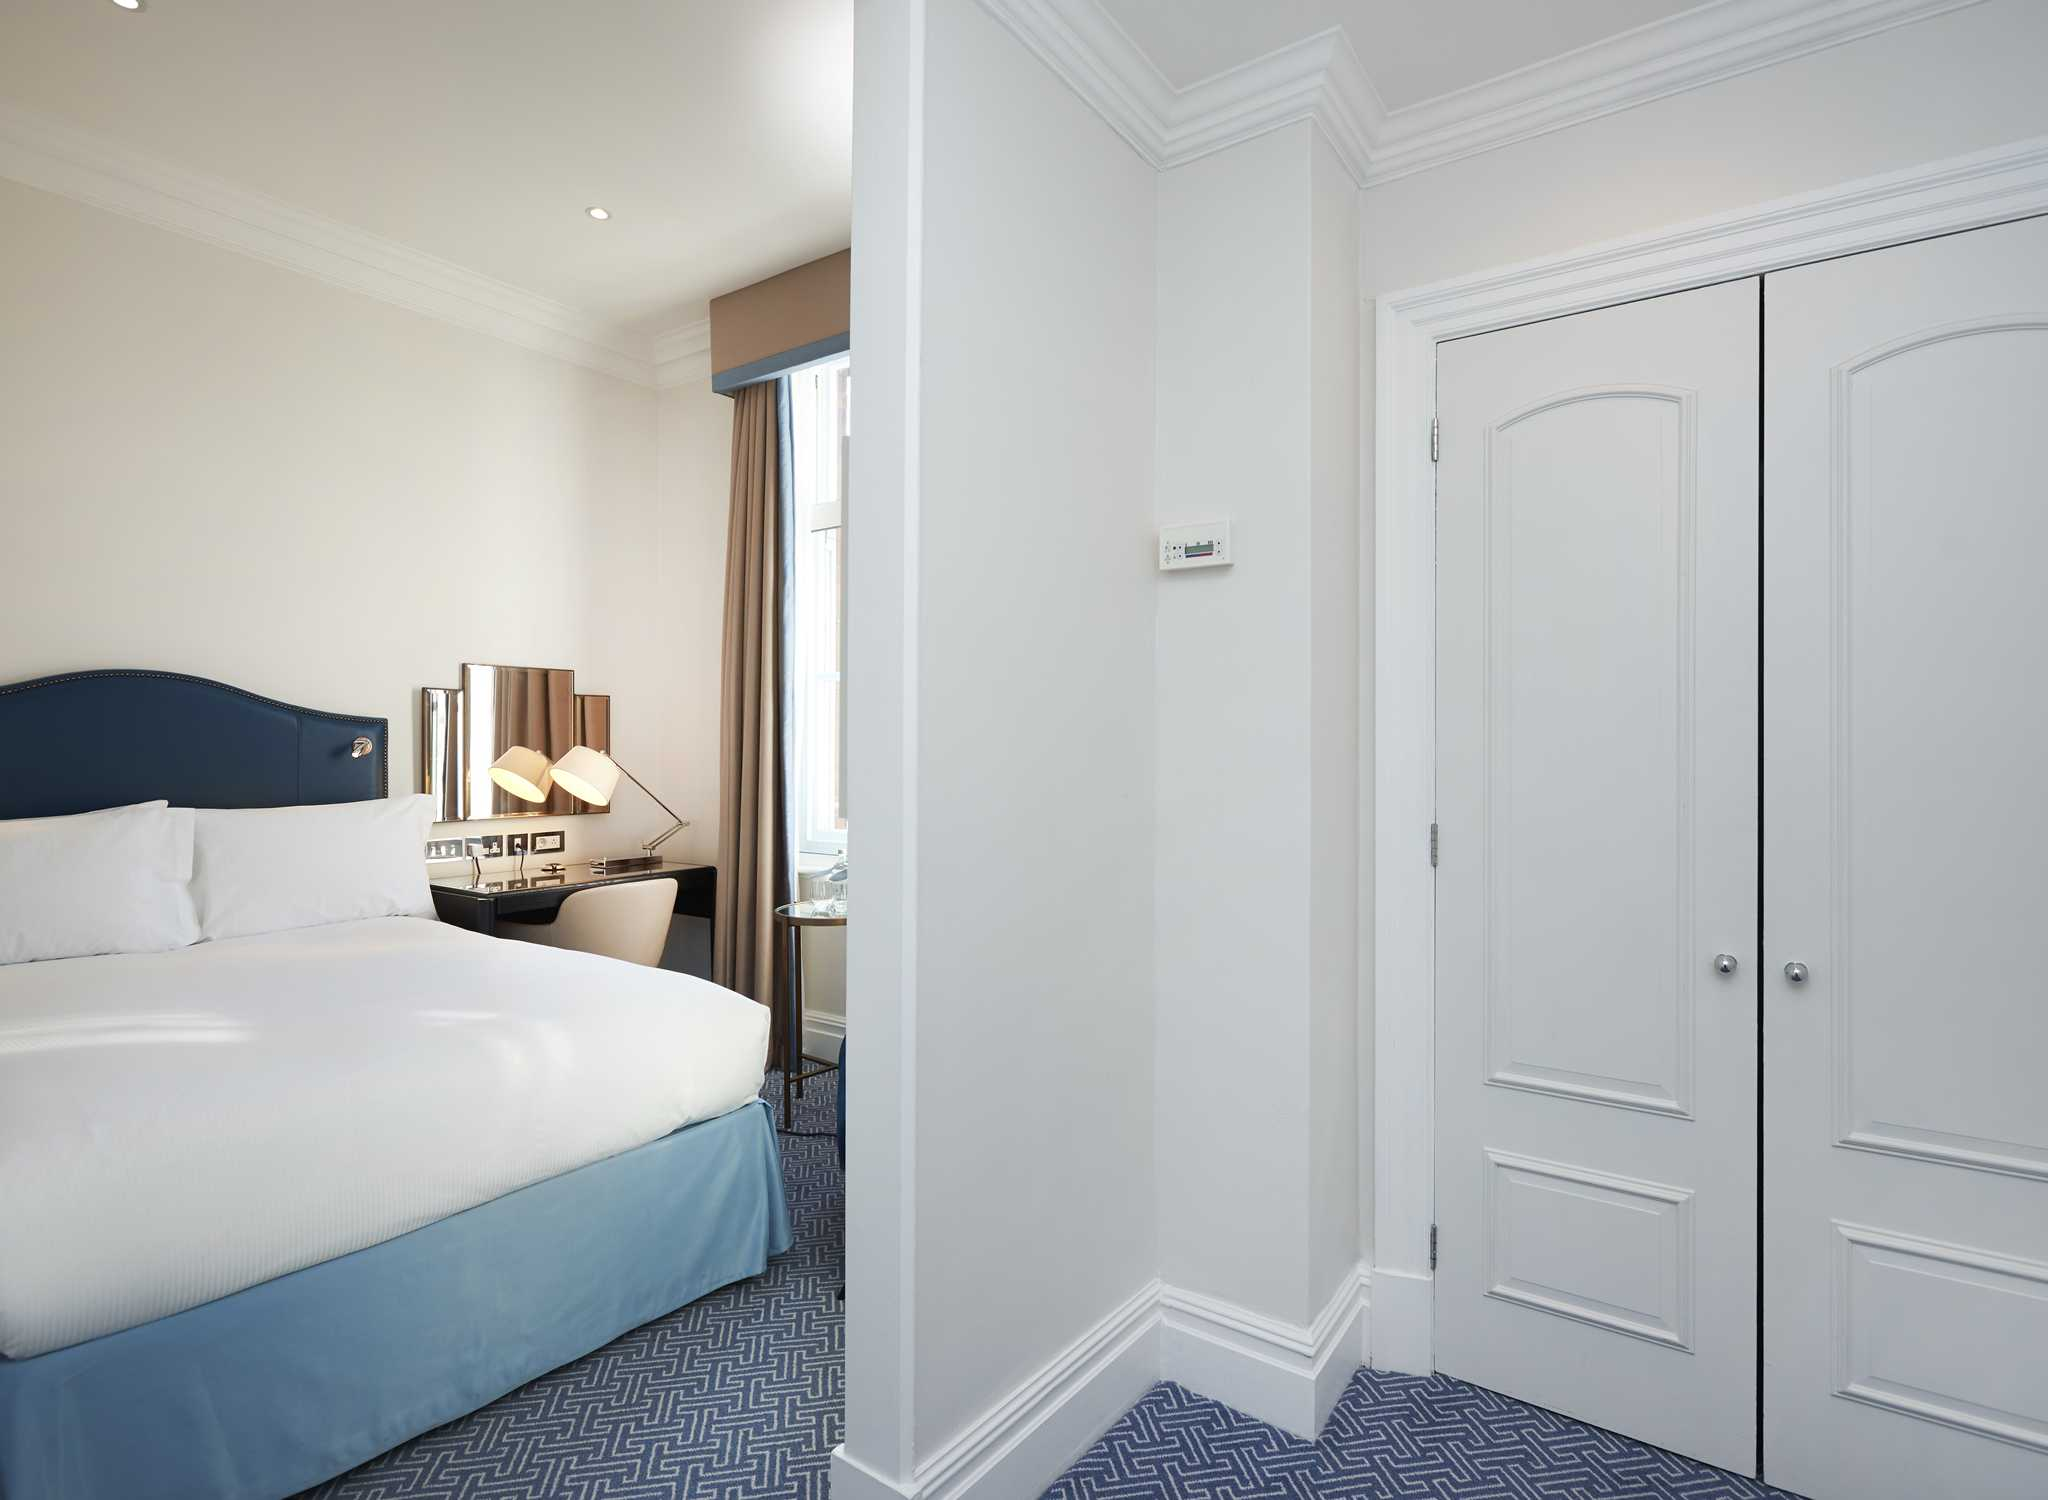 Hotels Londen Met Zwembad The Waldorf Hilton London Luxe Hotel In Londen West End